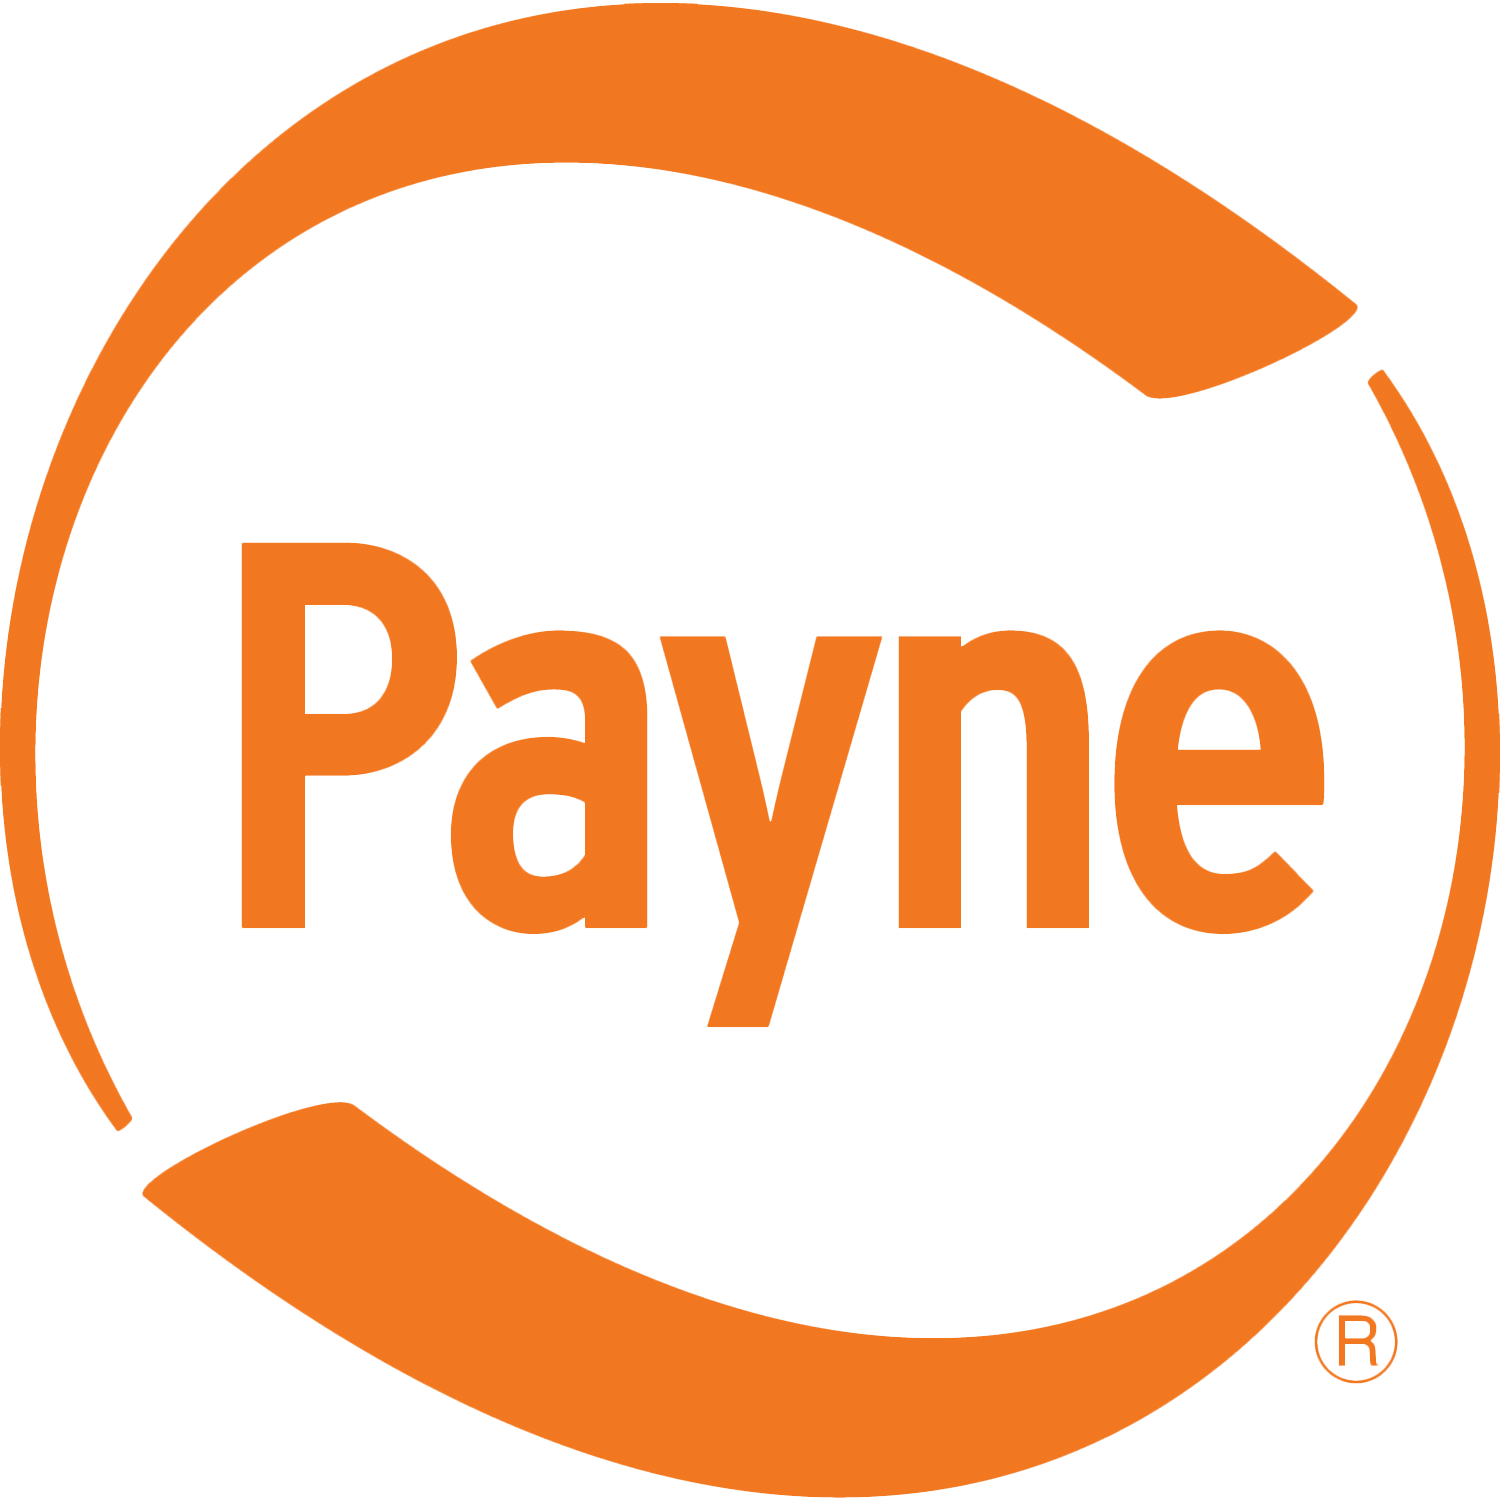 We provide heating system repairs, maintenance & installations for Payne HVAC products in the Charlotte NC, Harrisburg NC, Huntersville NC, Matthews NC, Concord NC, Cornelius NC and many more areas